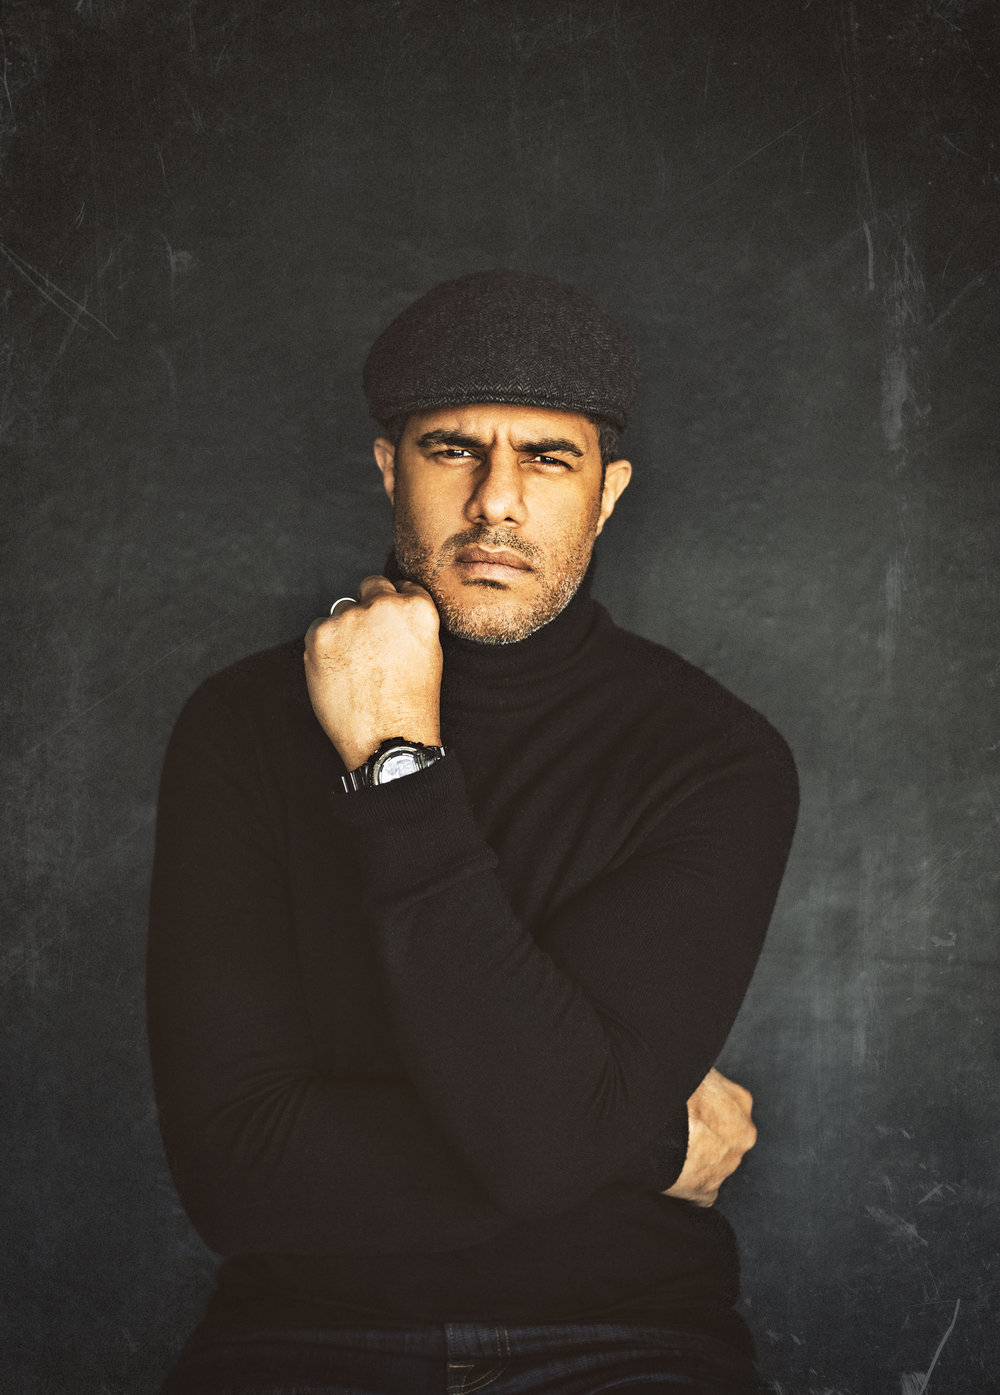 Black turtlenecks are cool!  Someone said I look like I'm modeling a watch! lol.  Well, on that note then - Shout out to G-SHOCK!